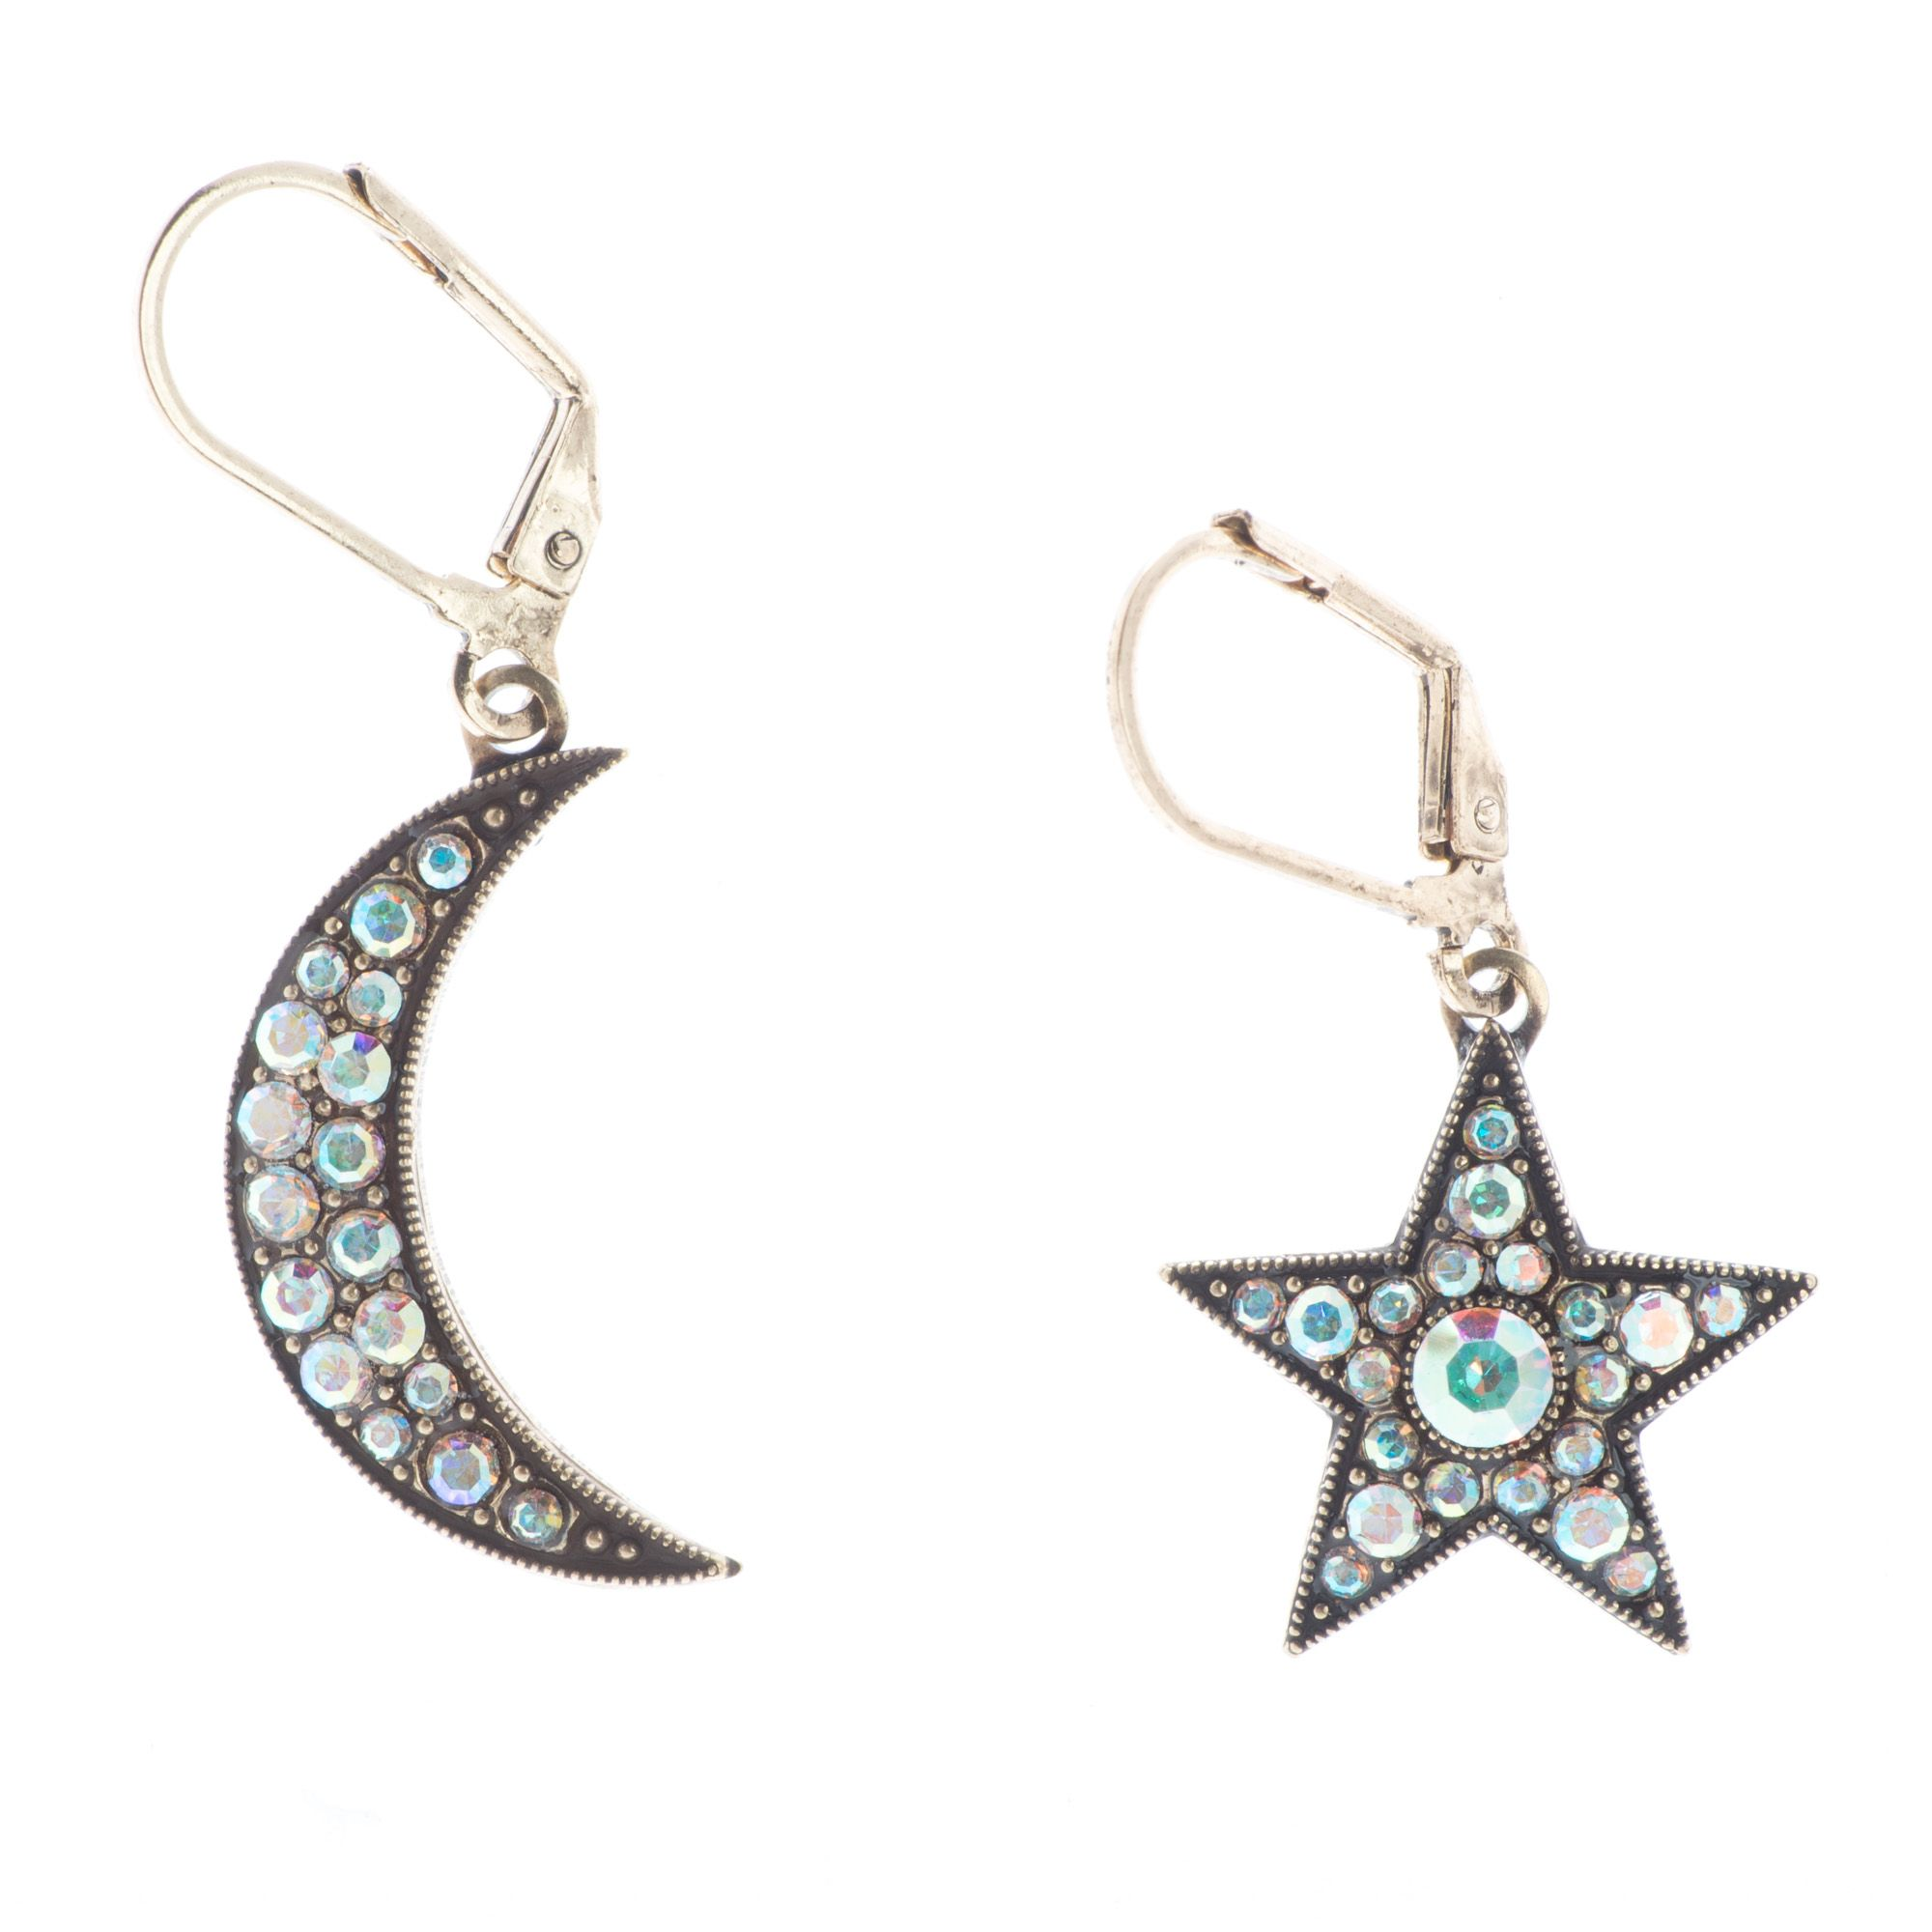 Top Shelf Jewelry Hammered Br Swarovski Crystal Star And Crescent Moon Earrings